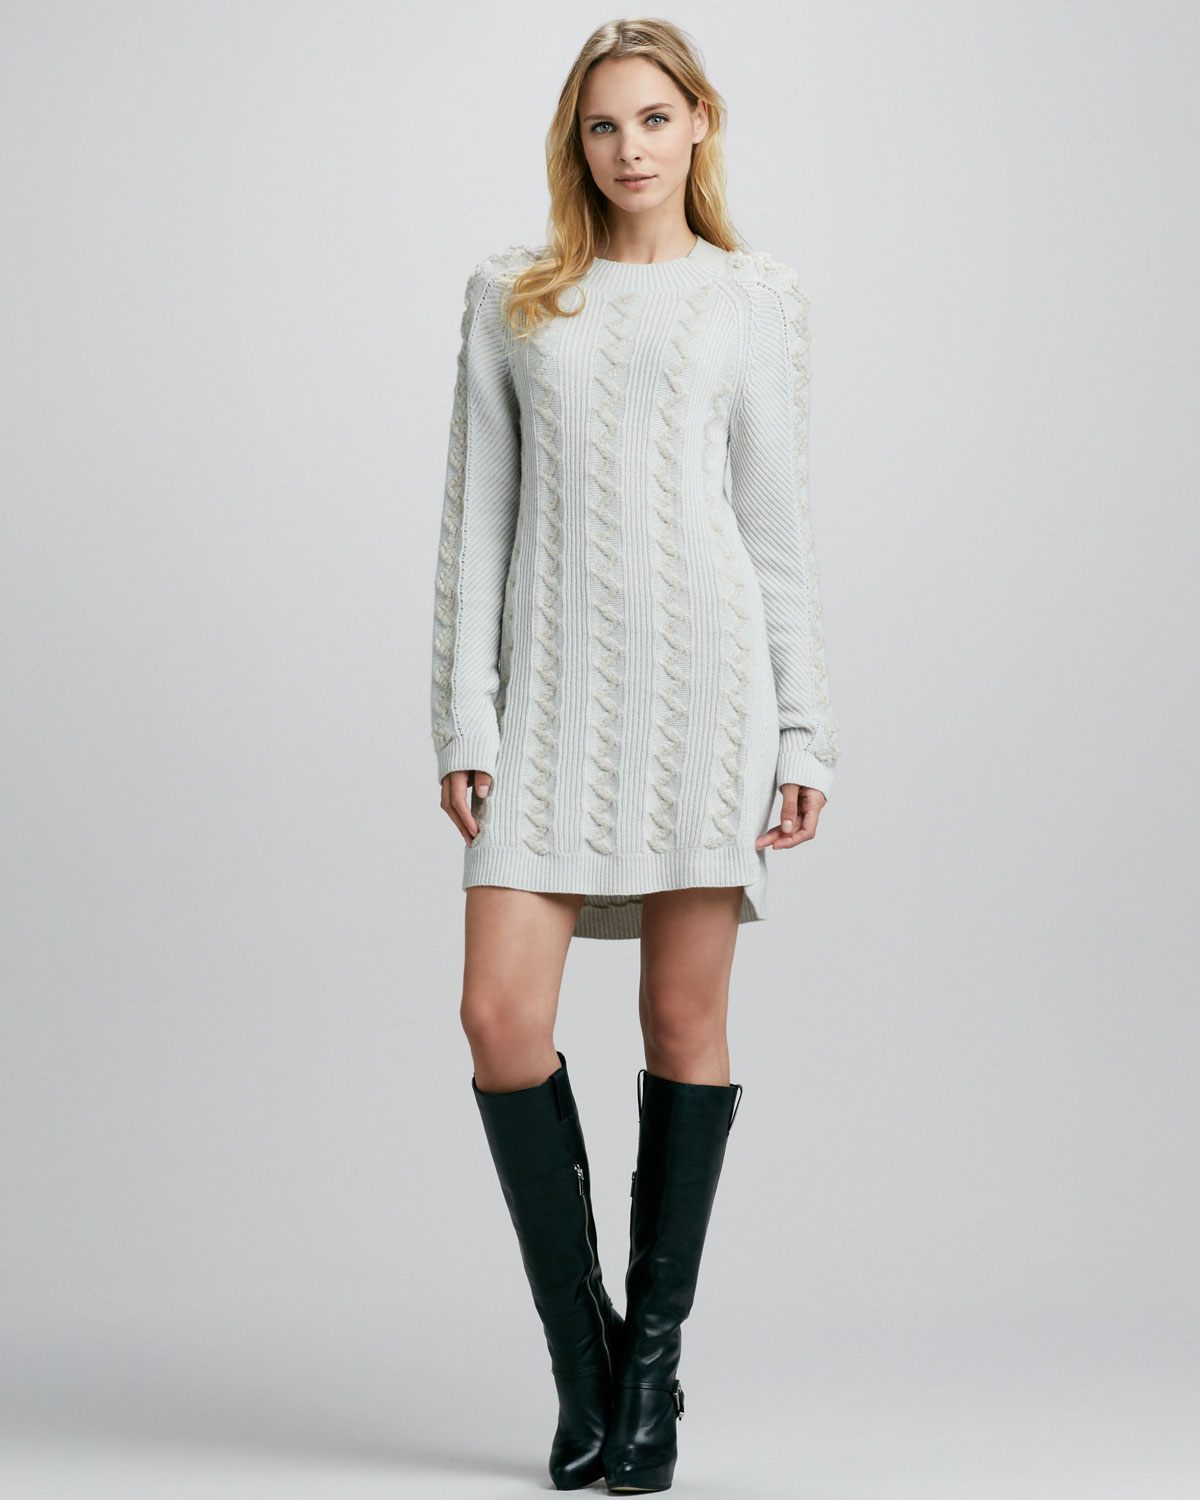 Cable Sweater Dress | Dress images